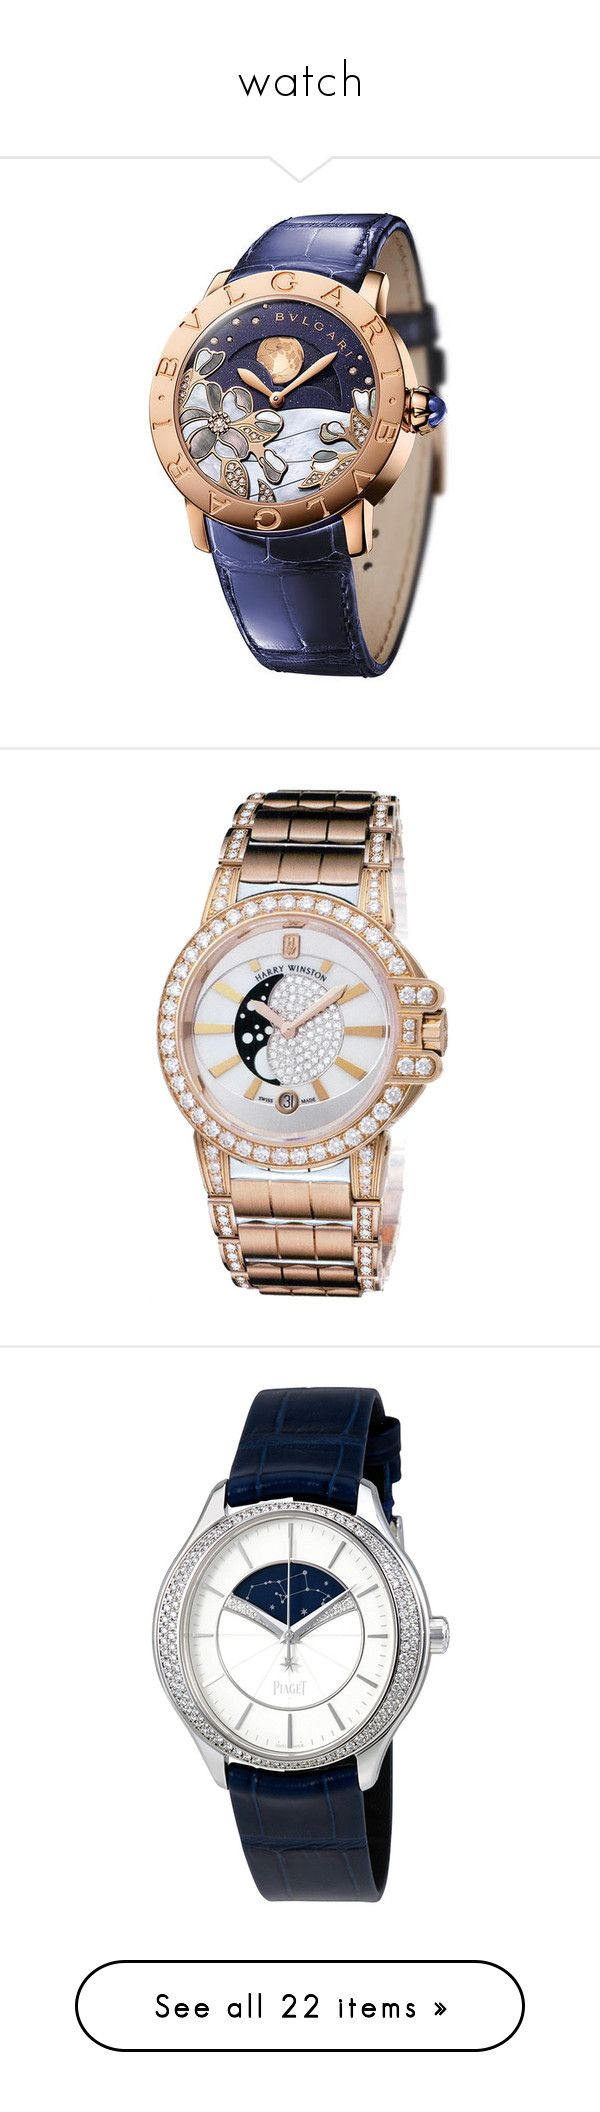 """""""watch"""" by aries-ariessw-sw on Polyvore featuring jewelry, watches, blue dial watches, white wrist watch, water resistant watches, bulgari, bulgari watches, harry winston jewelry, harry winston watches and white watches"""